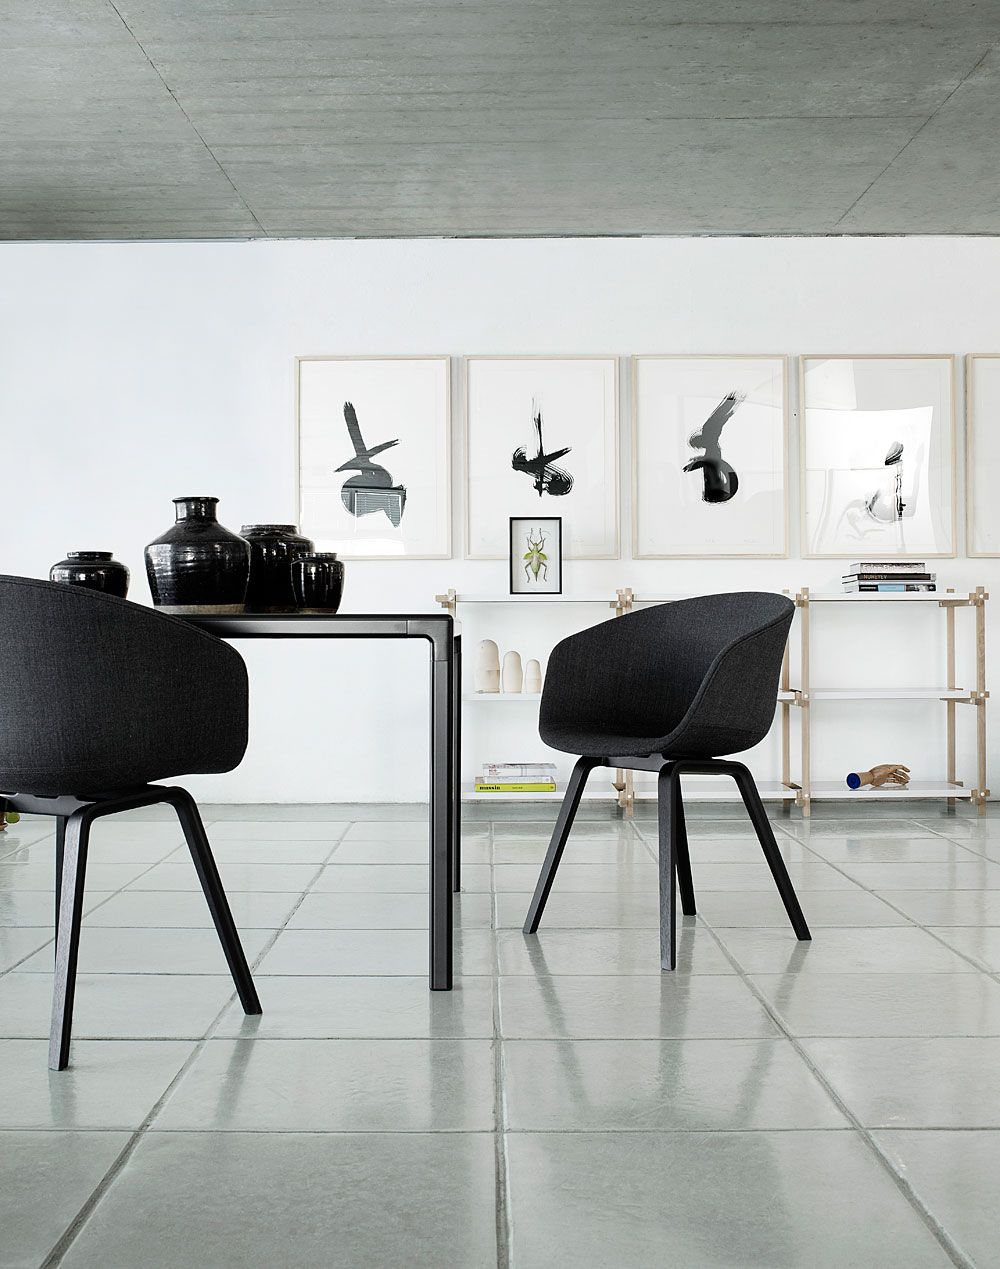 office chair conference dining scandinavian design aac22. Office Chair Conference Dining Scandinavian Design Aac22. Hay About A Aac22 \\u0026 Aac23 F